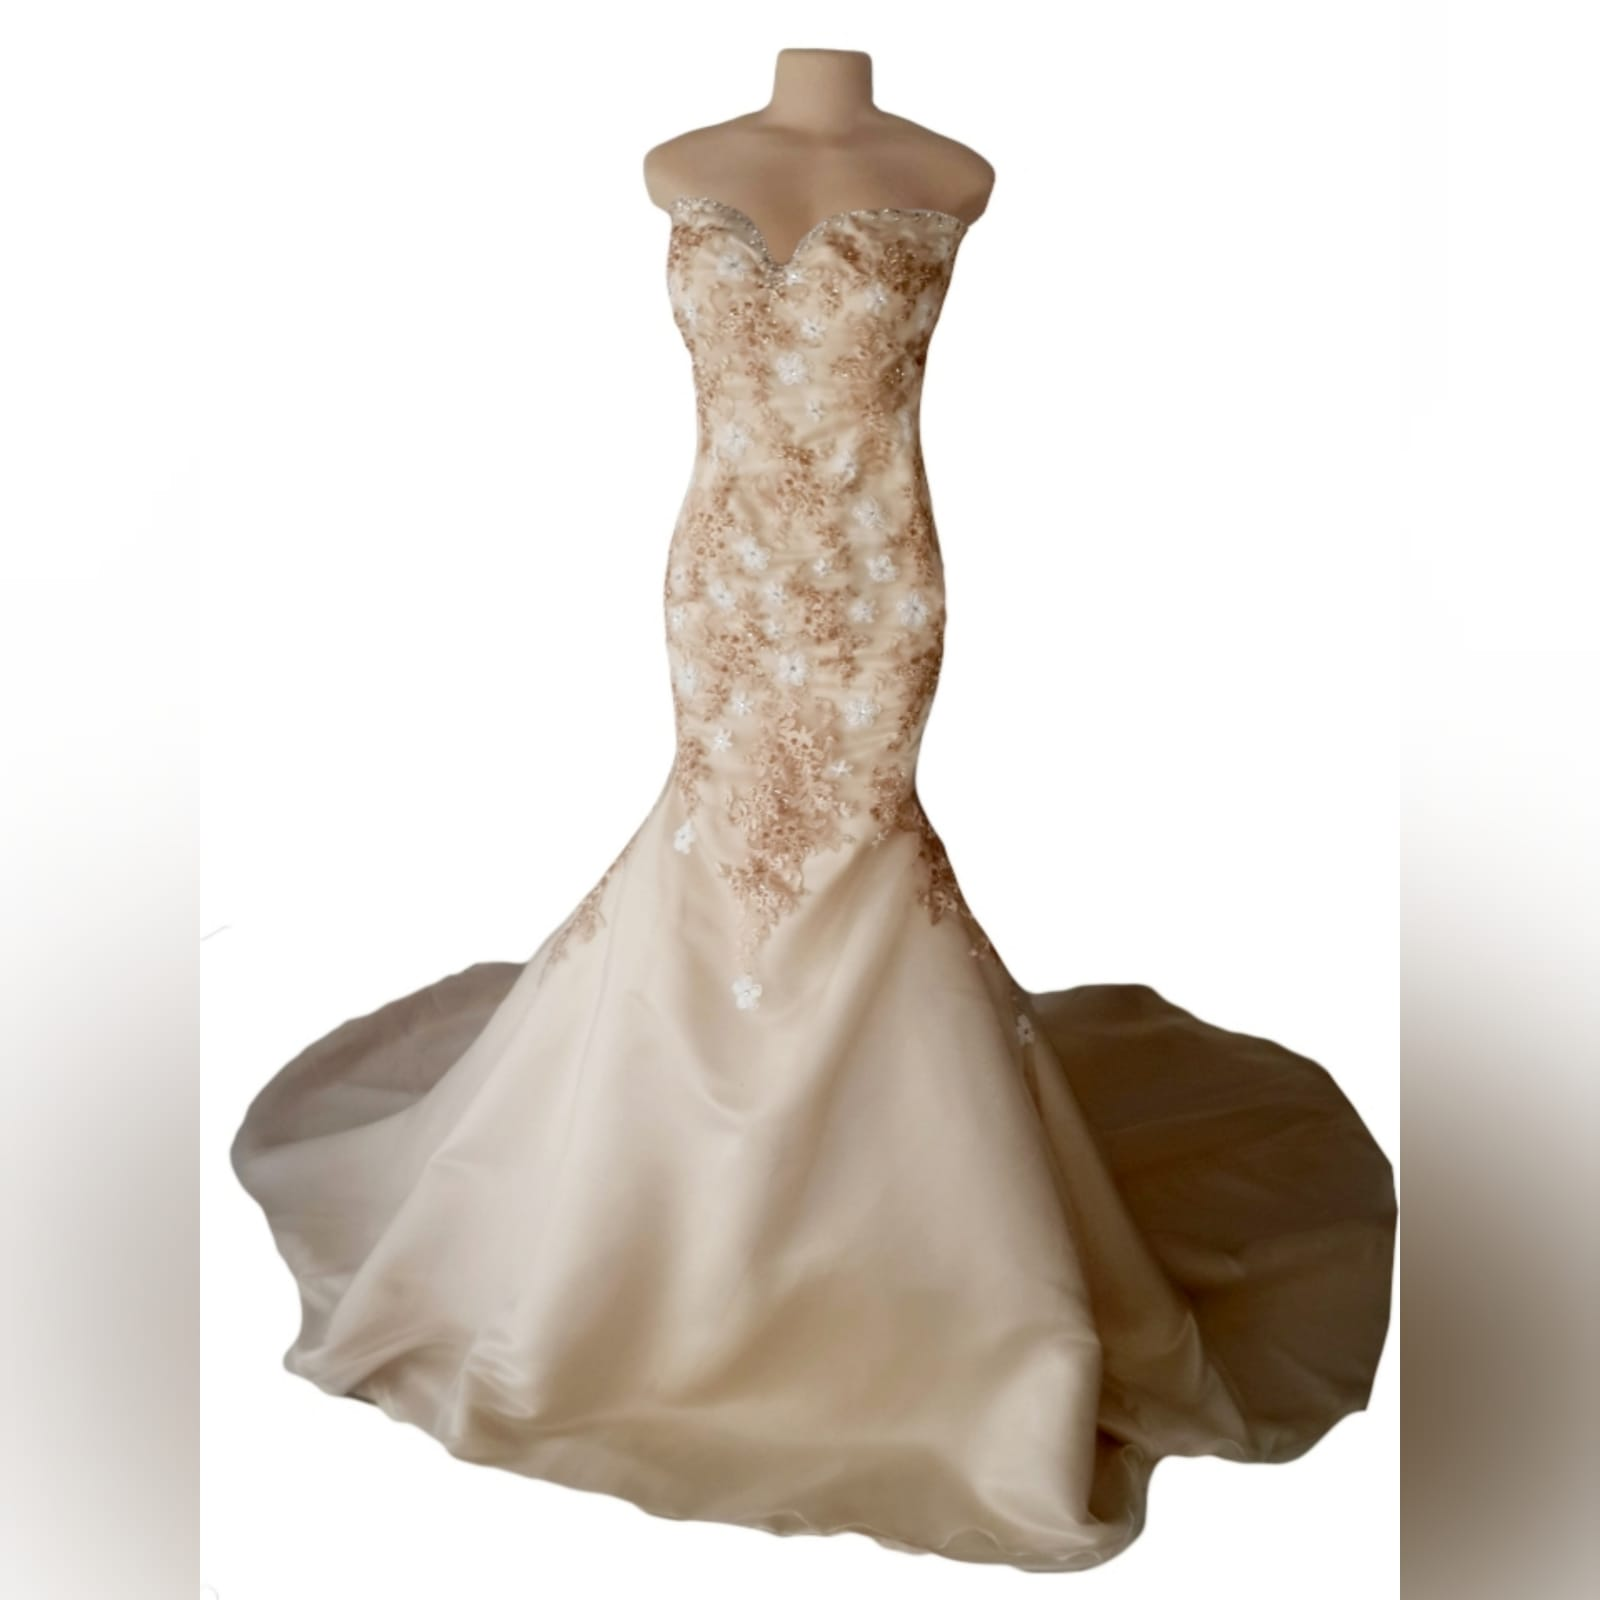 Sweet heart boob tube champagne wedding dress 7 champagne & white mermaid wedding dress, sweet heart boob tube with a lace up back. Bodice detailed with lace & beads